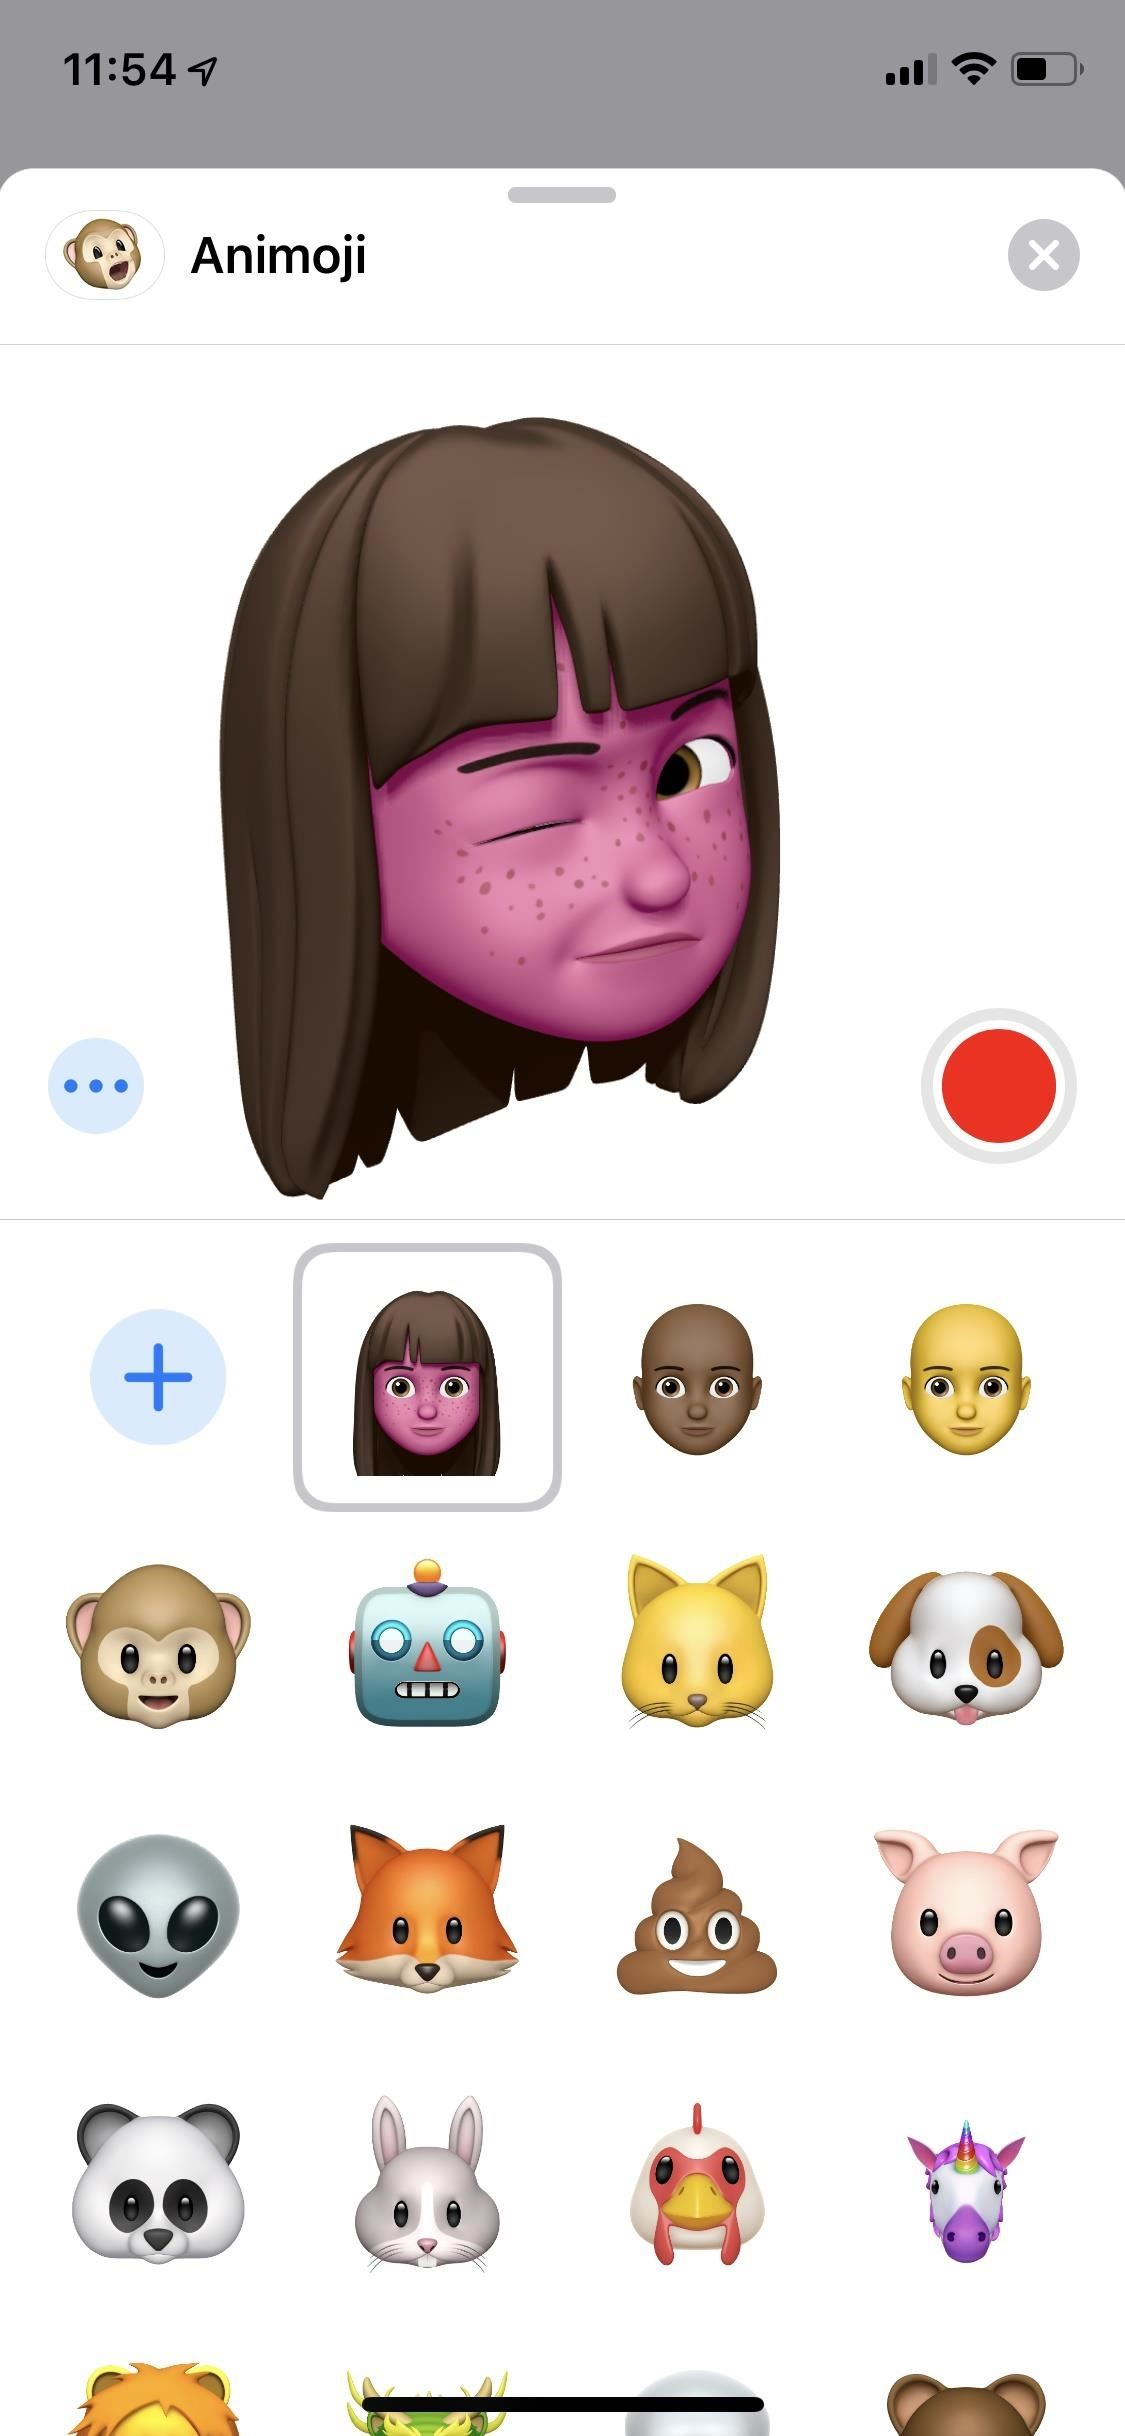 79 Cool new iOS 12 features you did not know